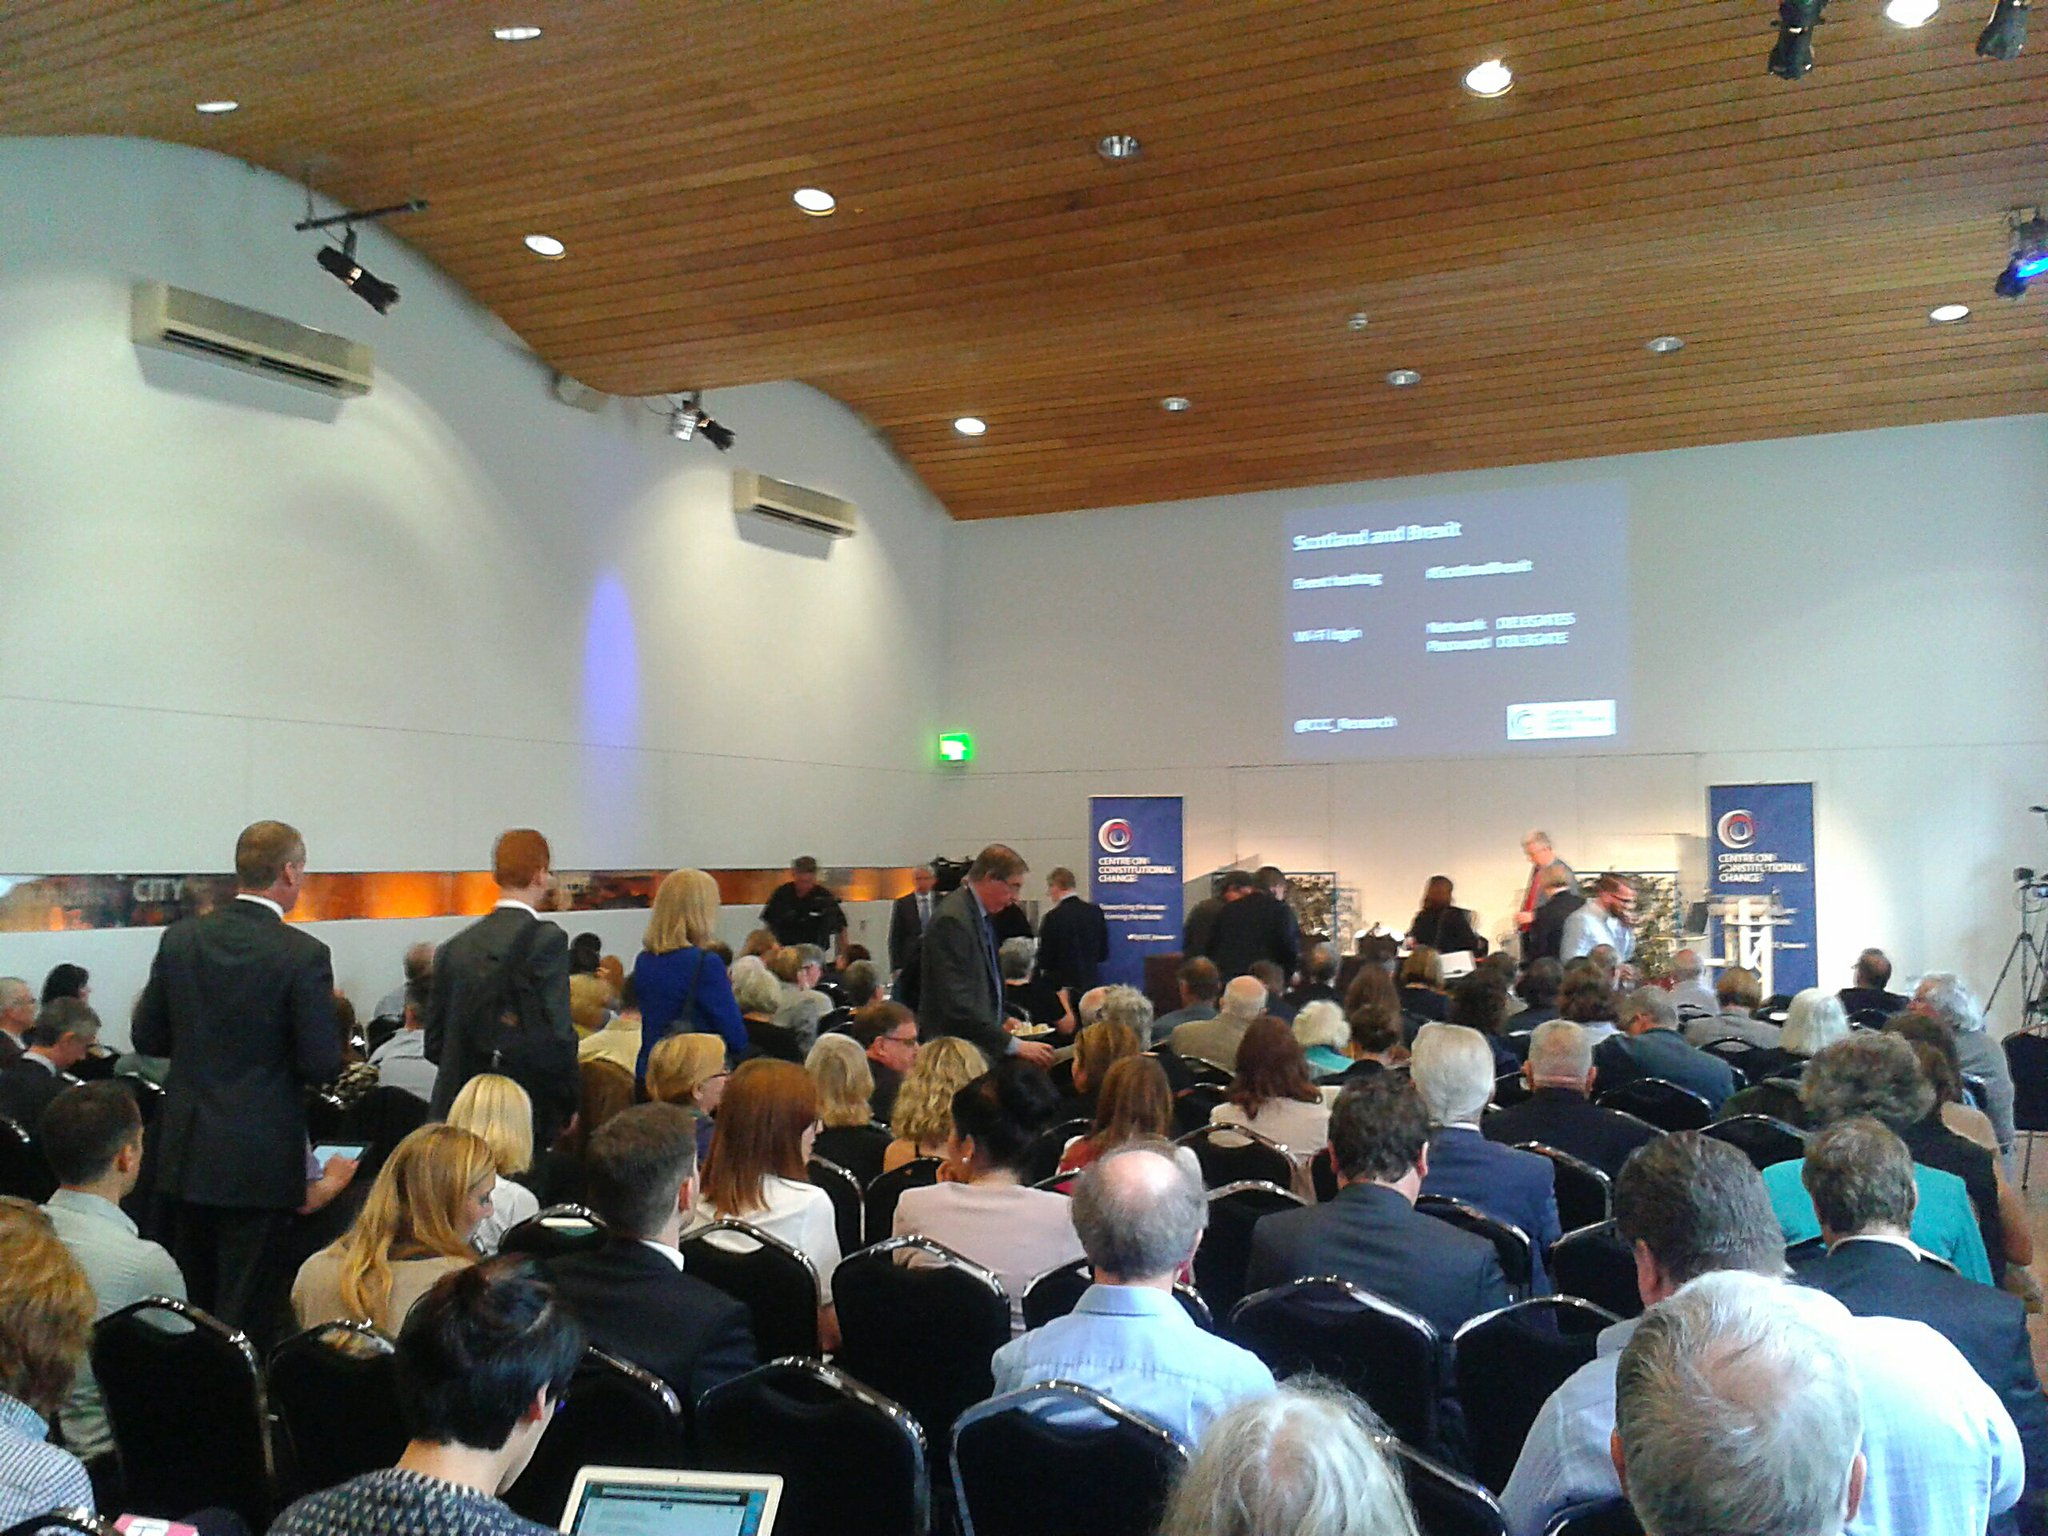 Full house at the #ScotlandBrexit event, organised by @CCC_Research. We're about to start! https://t.co/lEYcaW0h8I